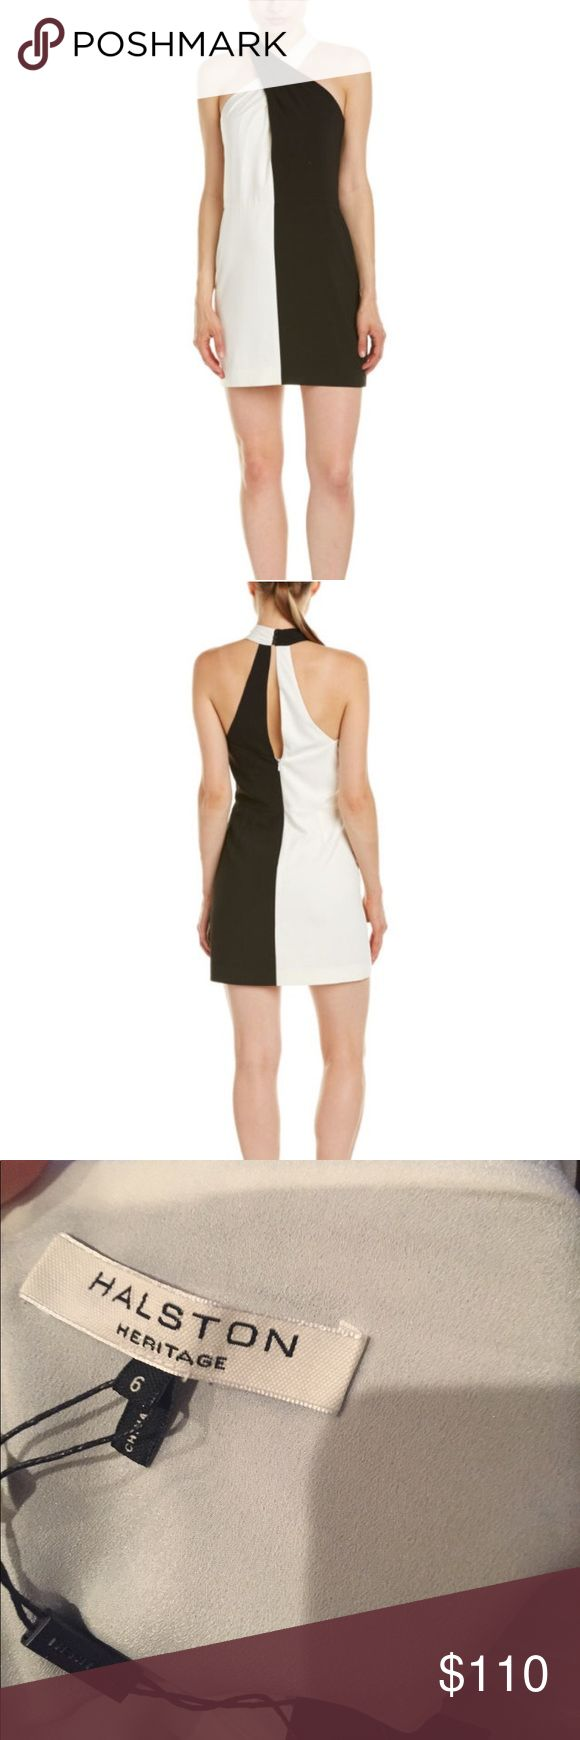 Classy NWT Halston Heritage Dress Classy halter style black and Halston Heritage dress. I was going to wear it to a party and didn't return it in time. My indecision is your gain. Get this great dress at a greater price! Halston Heritage Dresses